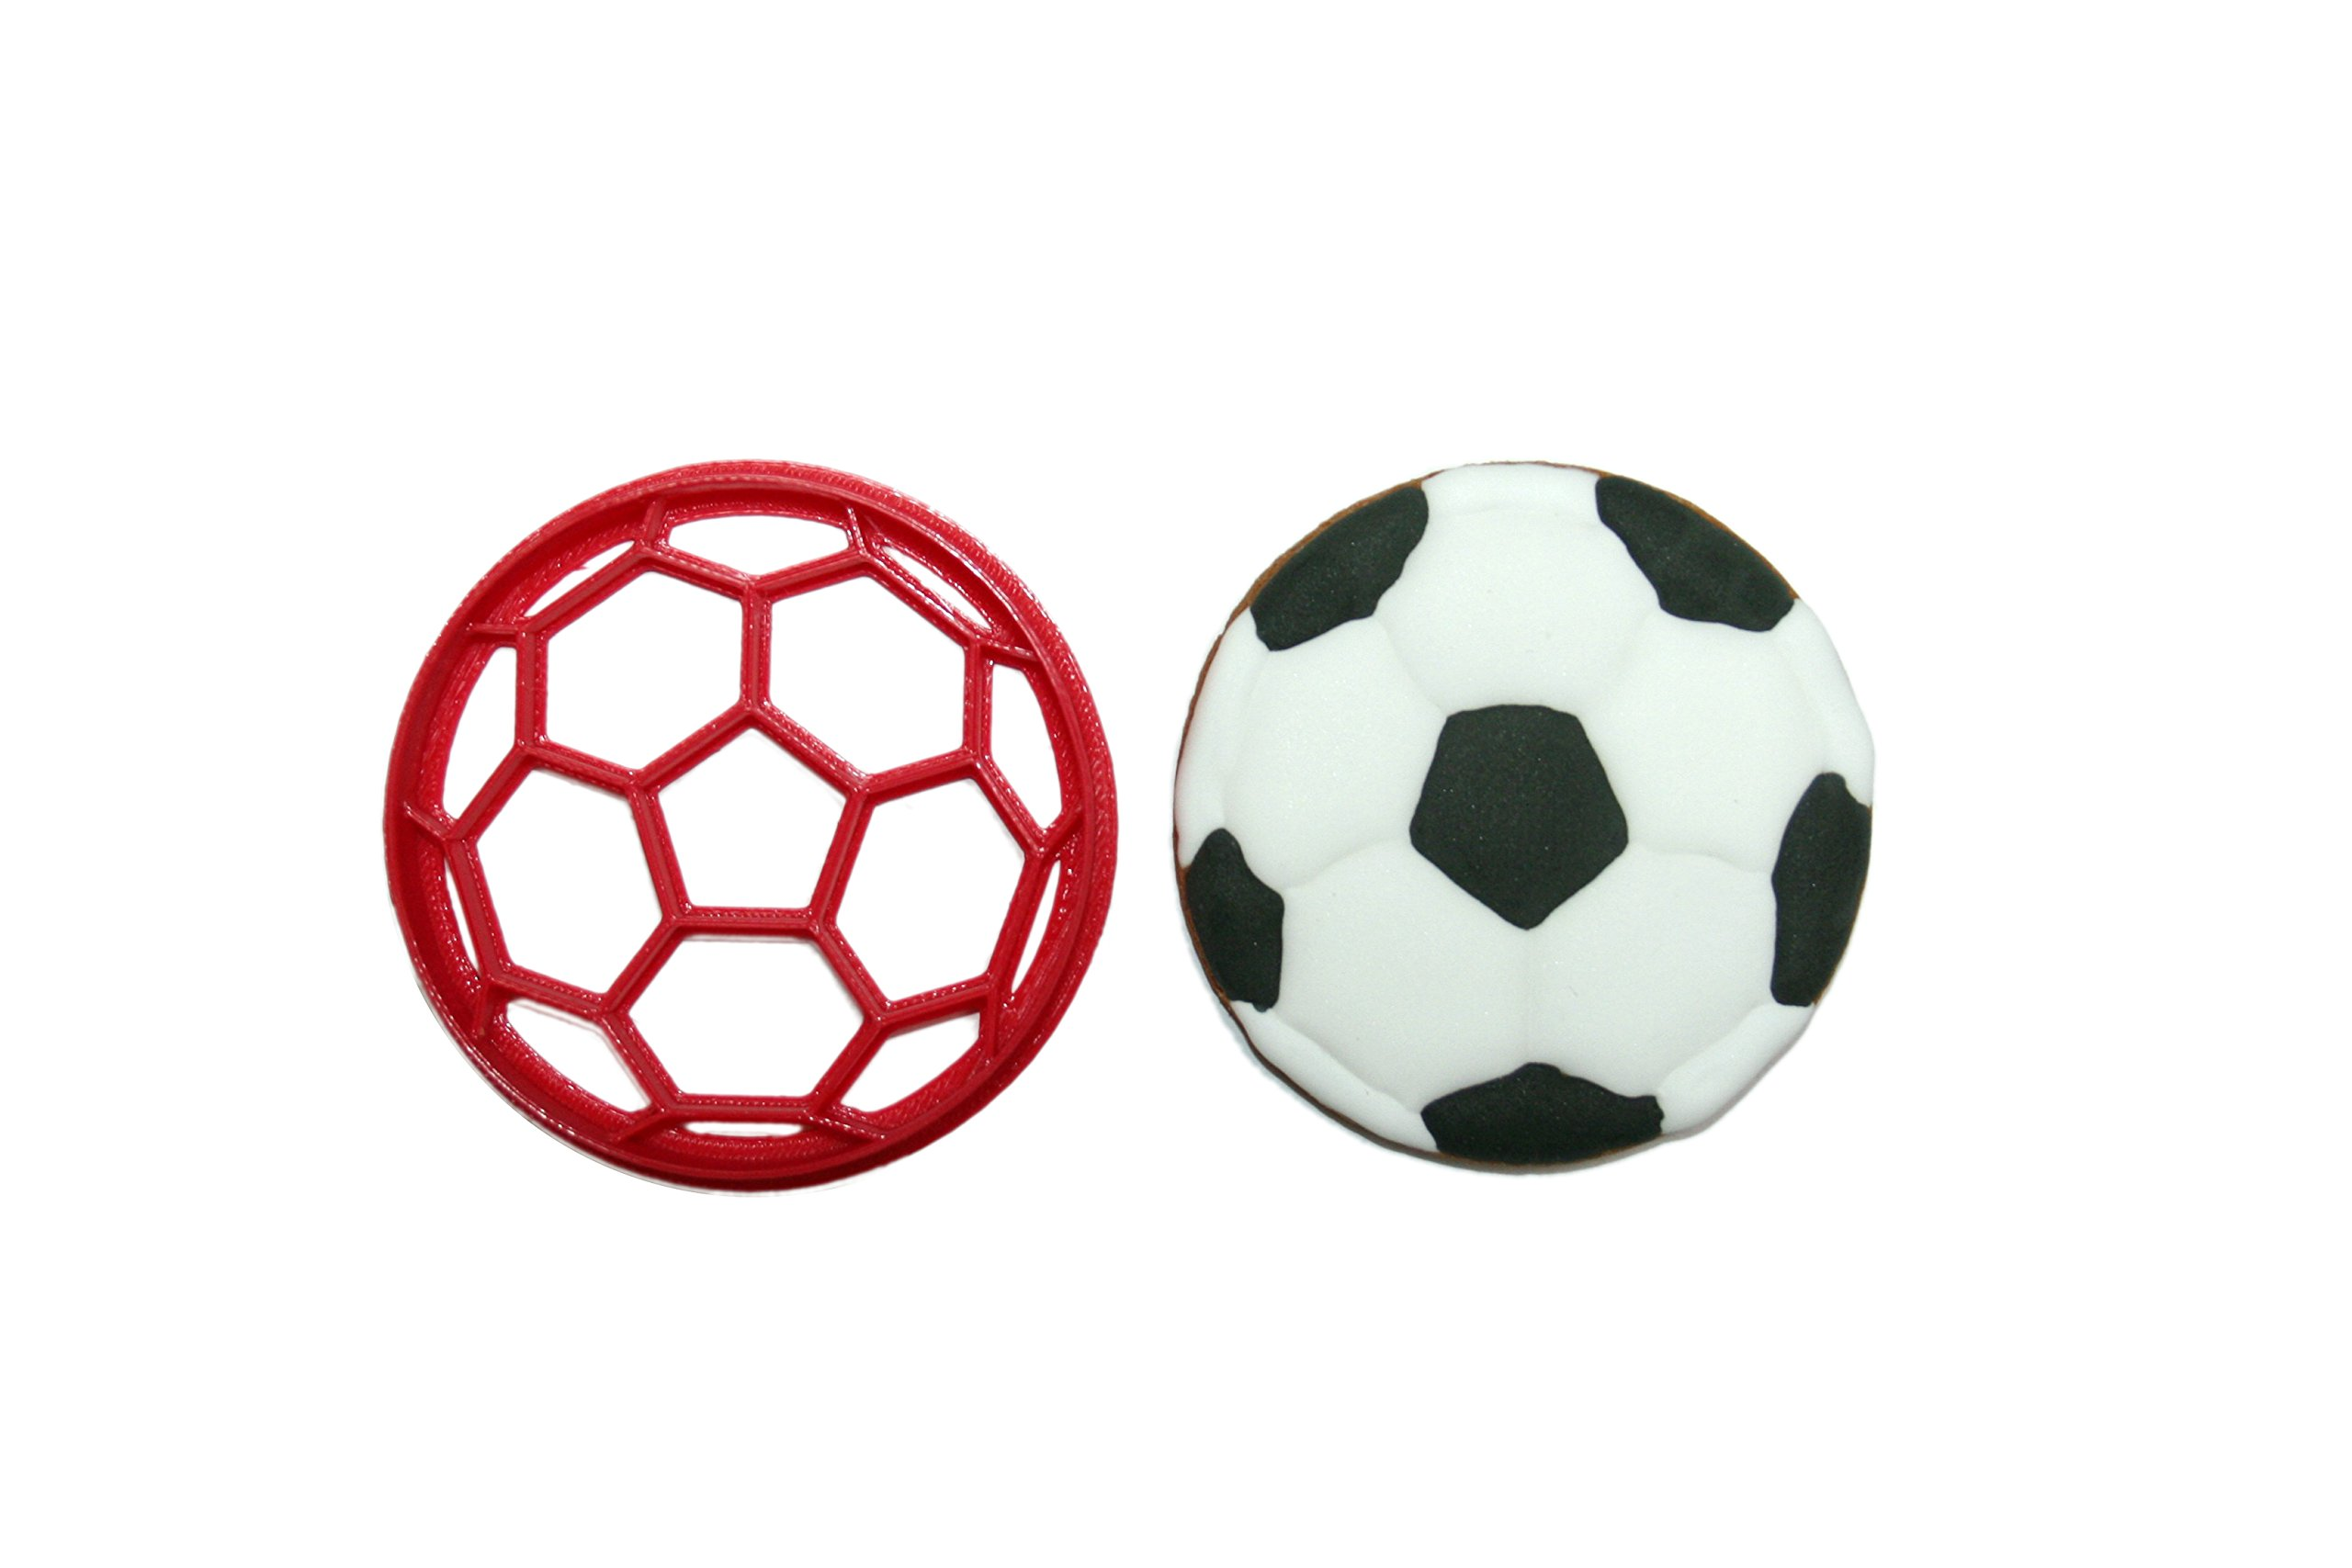 Soccer Ball Cookie Cutter 1 Approx. 3 inches wide by 3 inches tall HANDWASH ONLY Plastic-PLA